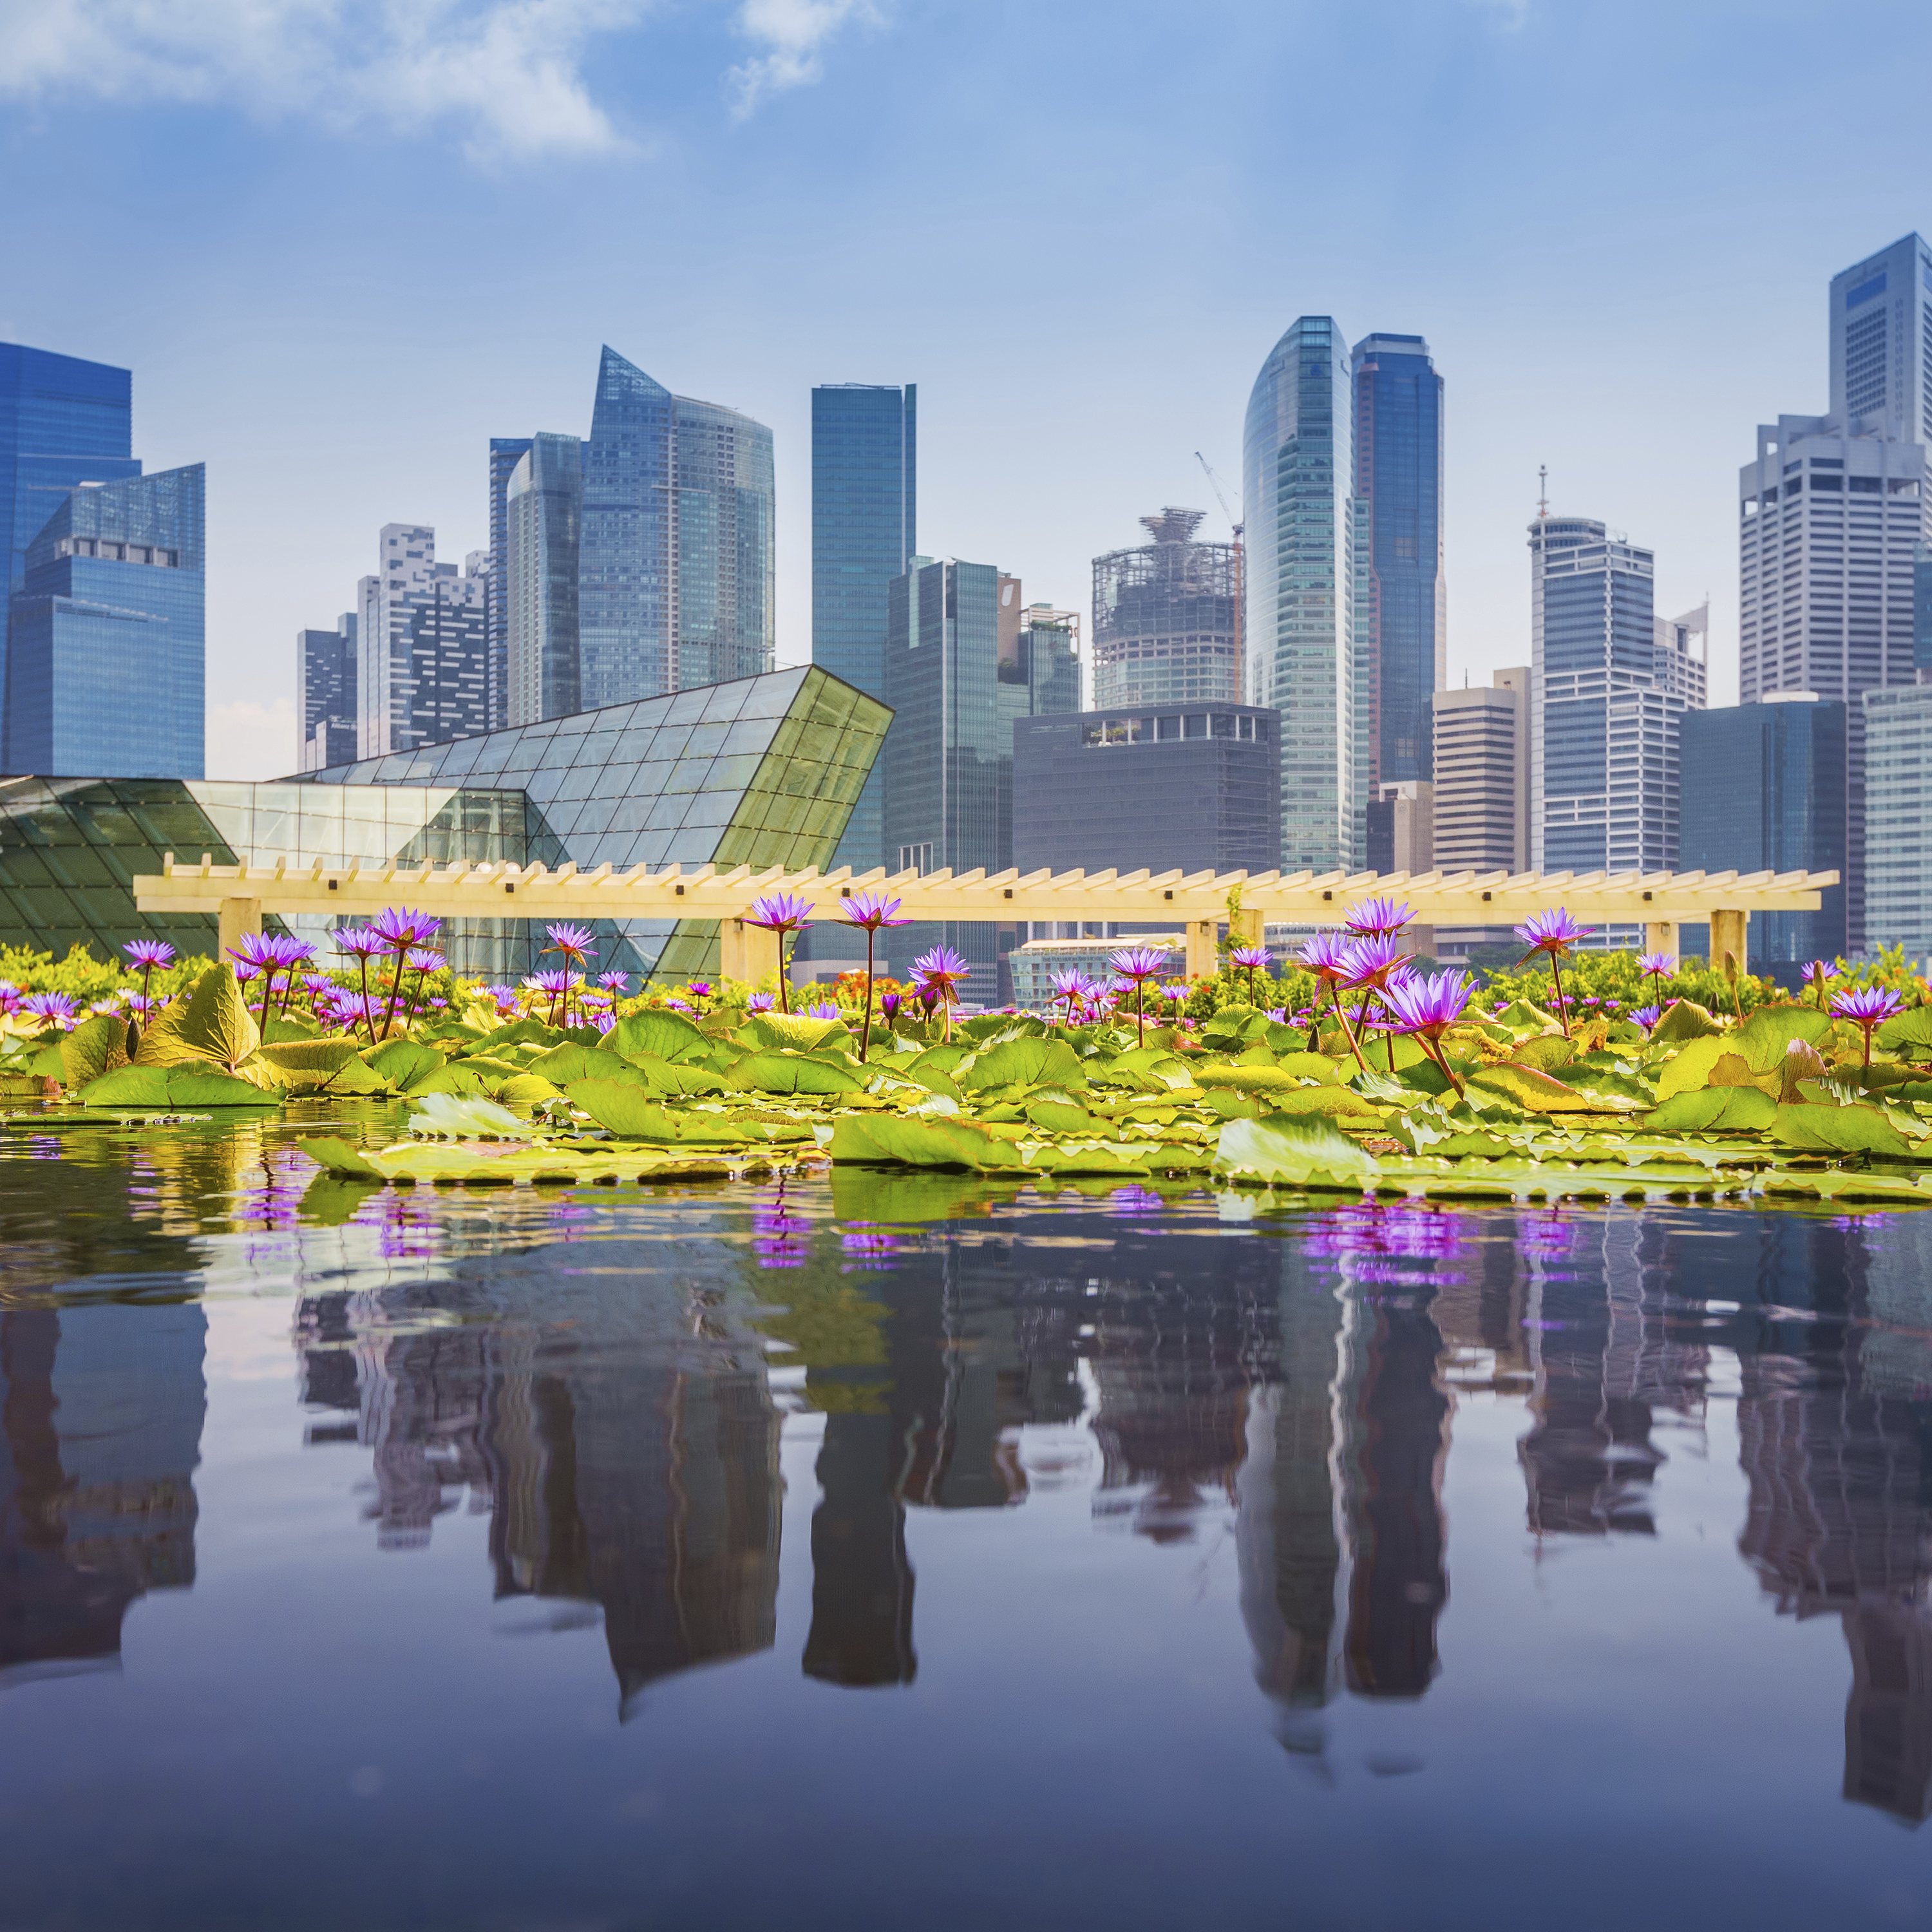 Peddinghaus Industry Singapore: Why Singapore Is The Best Country For Business